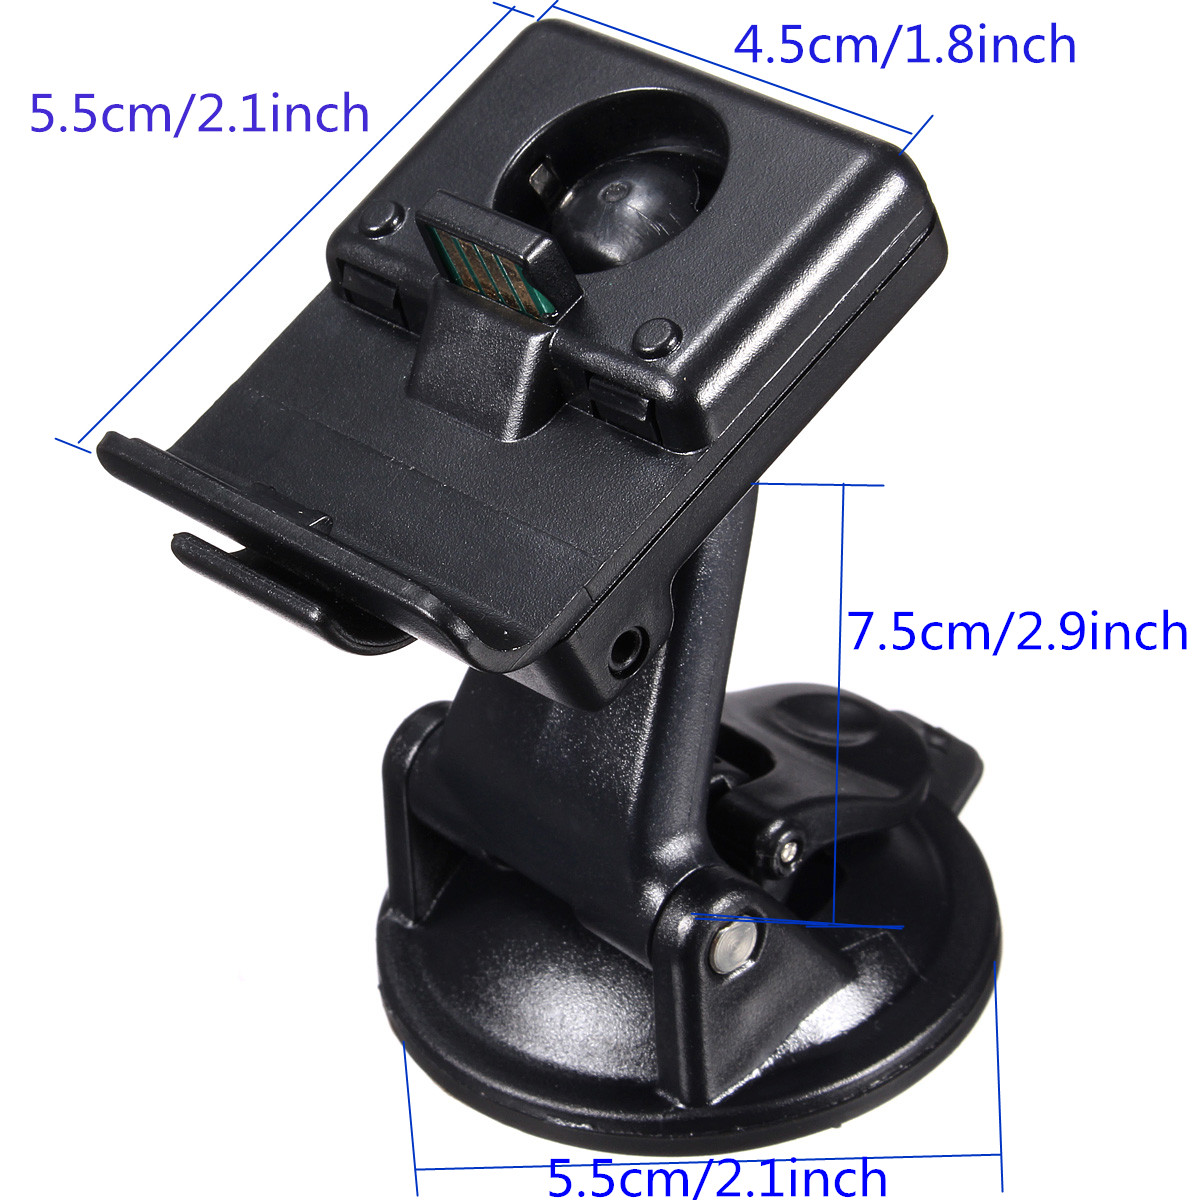 Car Windshield Suction Cup Mount GPS Holder for Garmin Nuvi 300 300T 310 310T